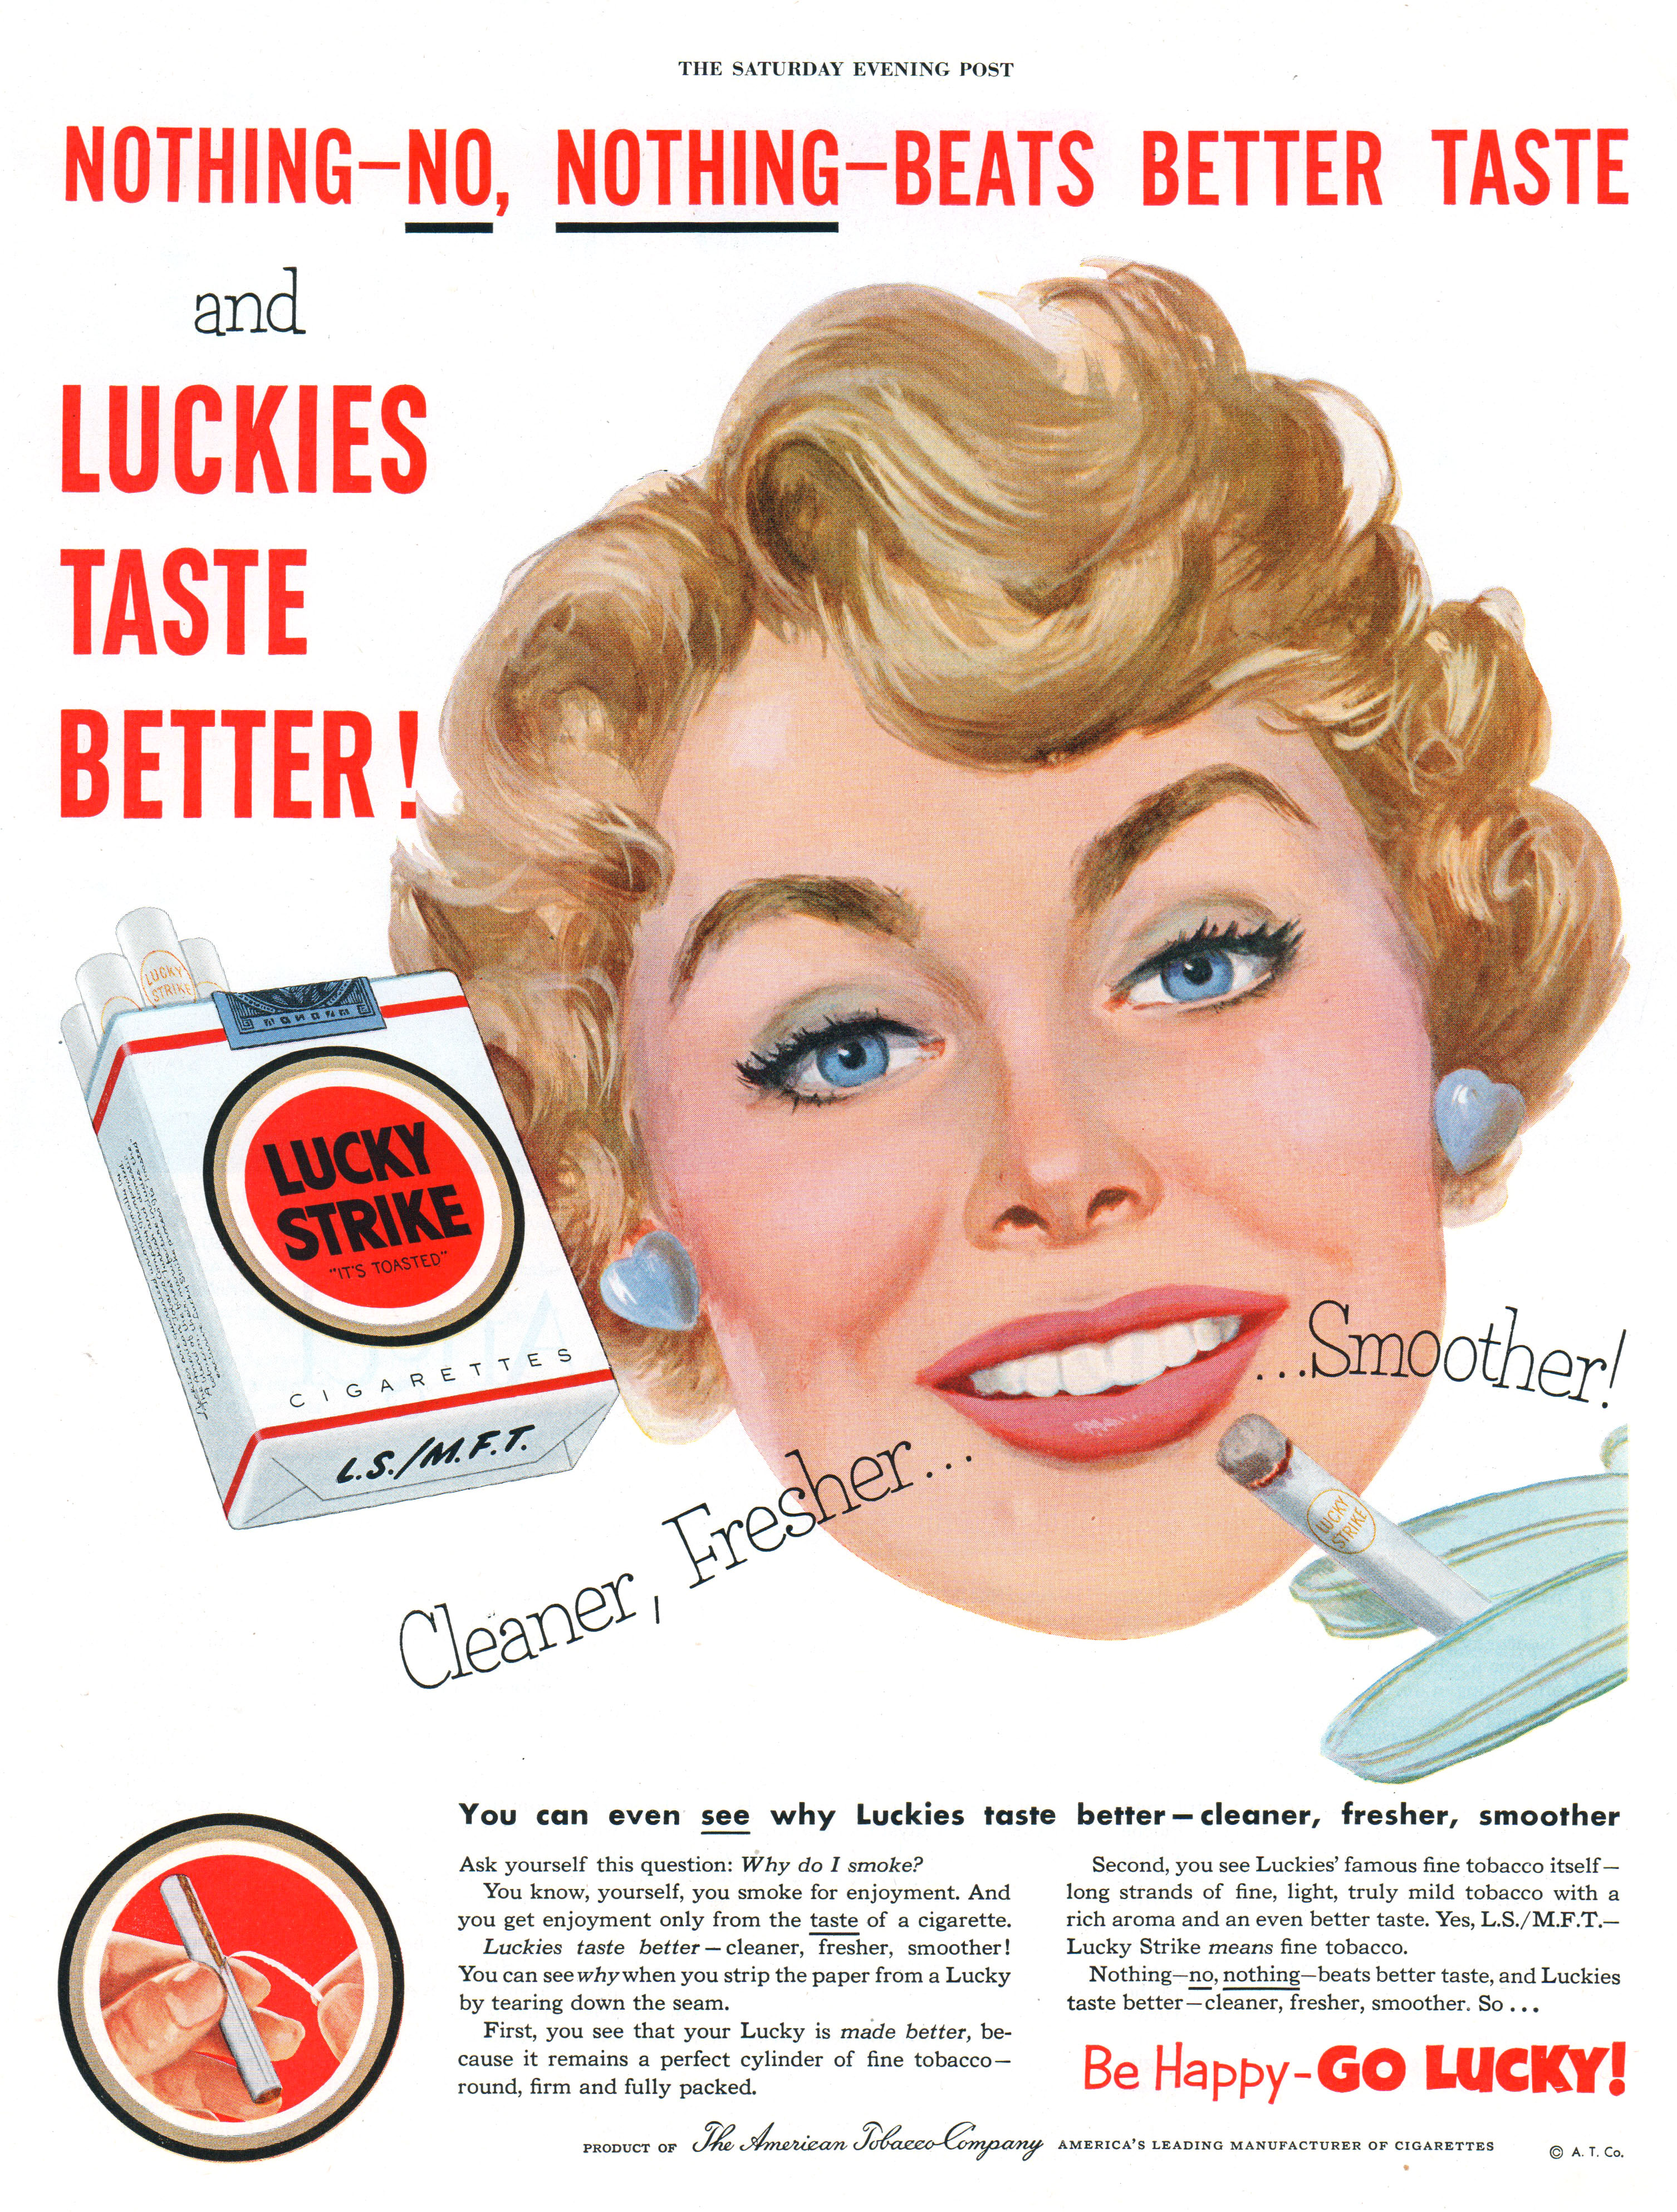 Lucky Strike - published in The Saturday Evening Post - February 14, 1953